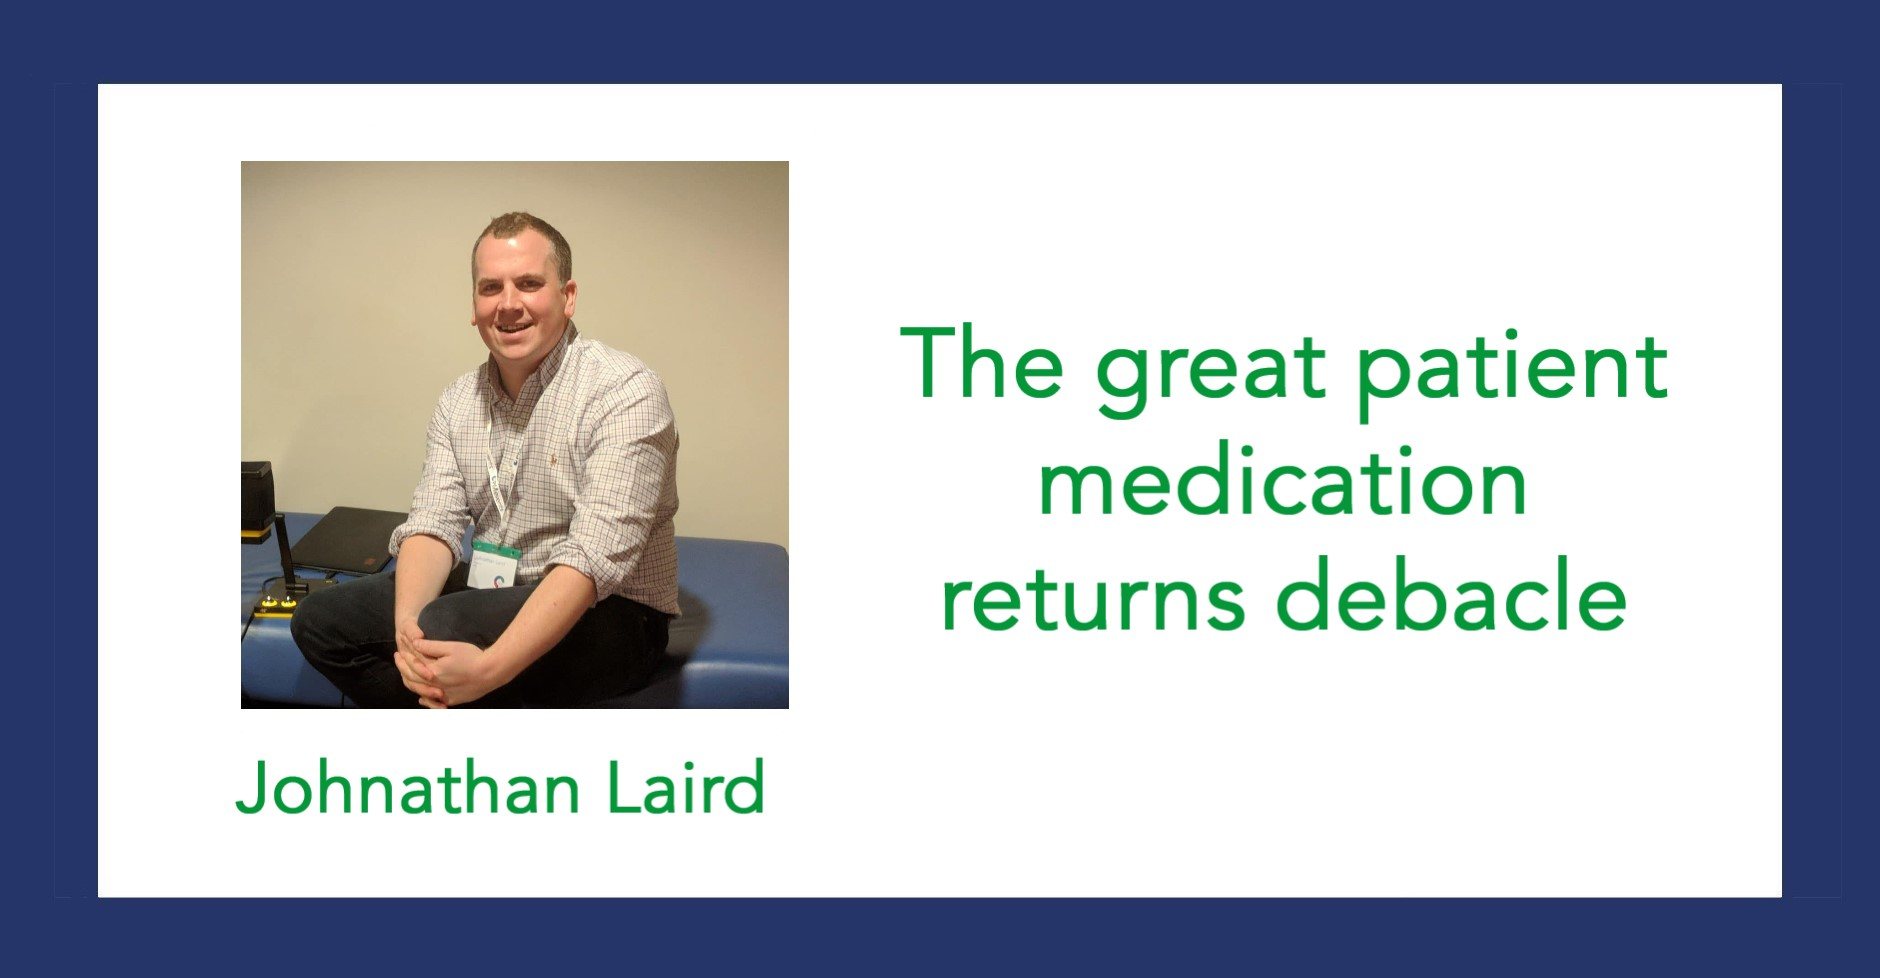 The great patient medication returns debacle